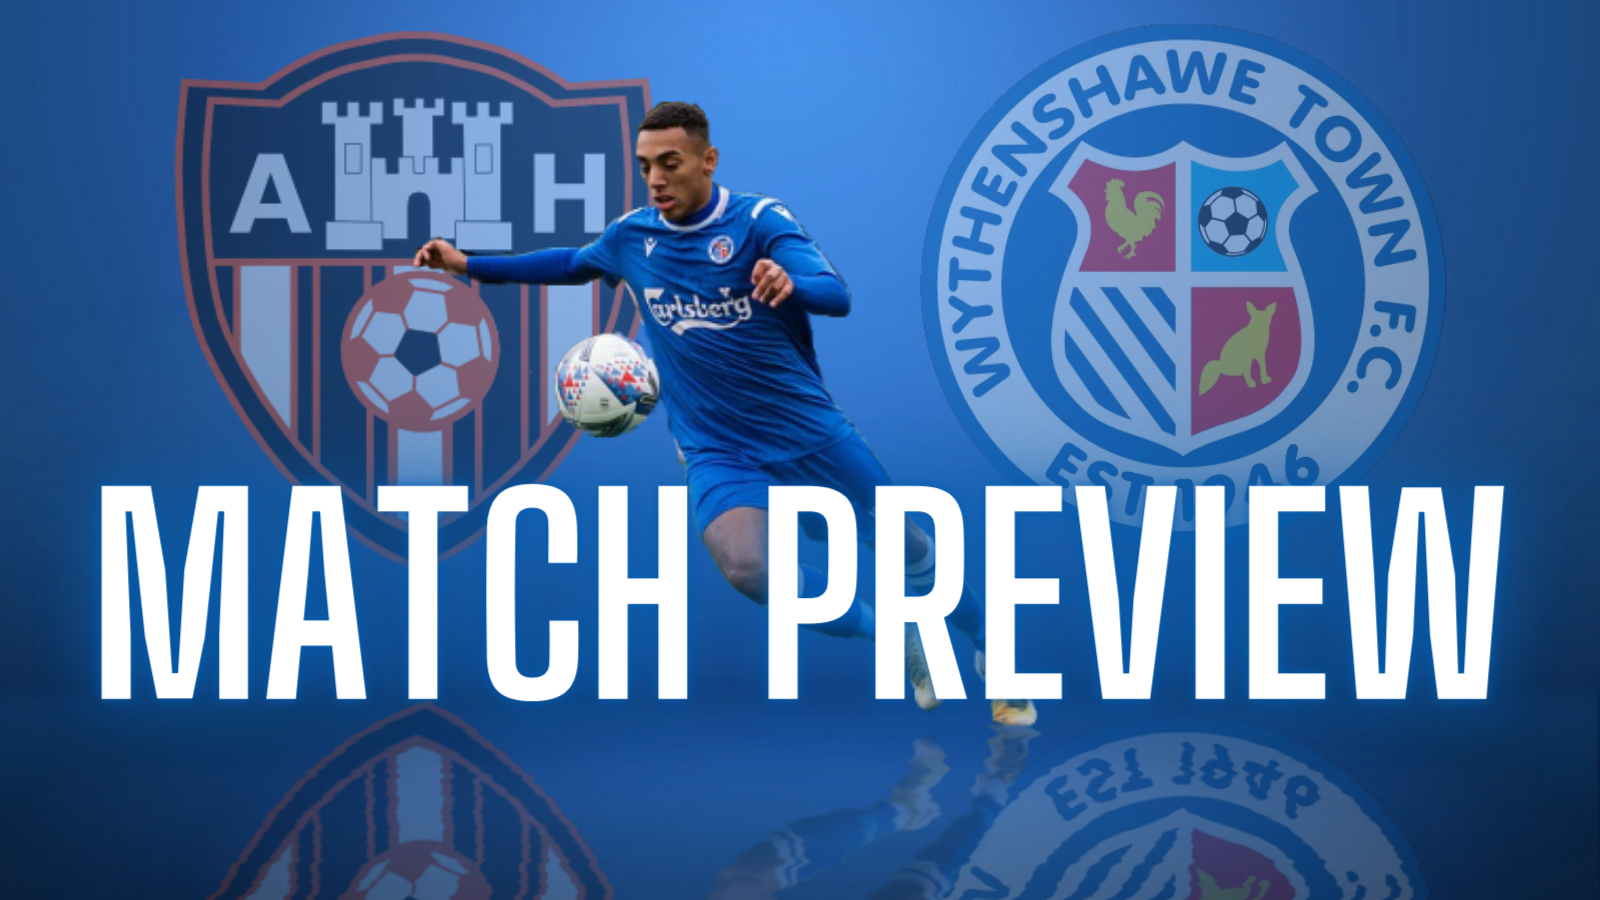 Abbey Hulton vs Town: Preview